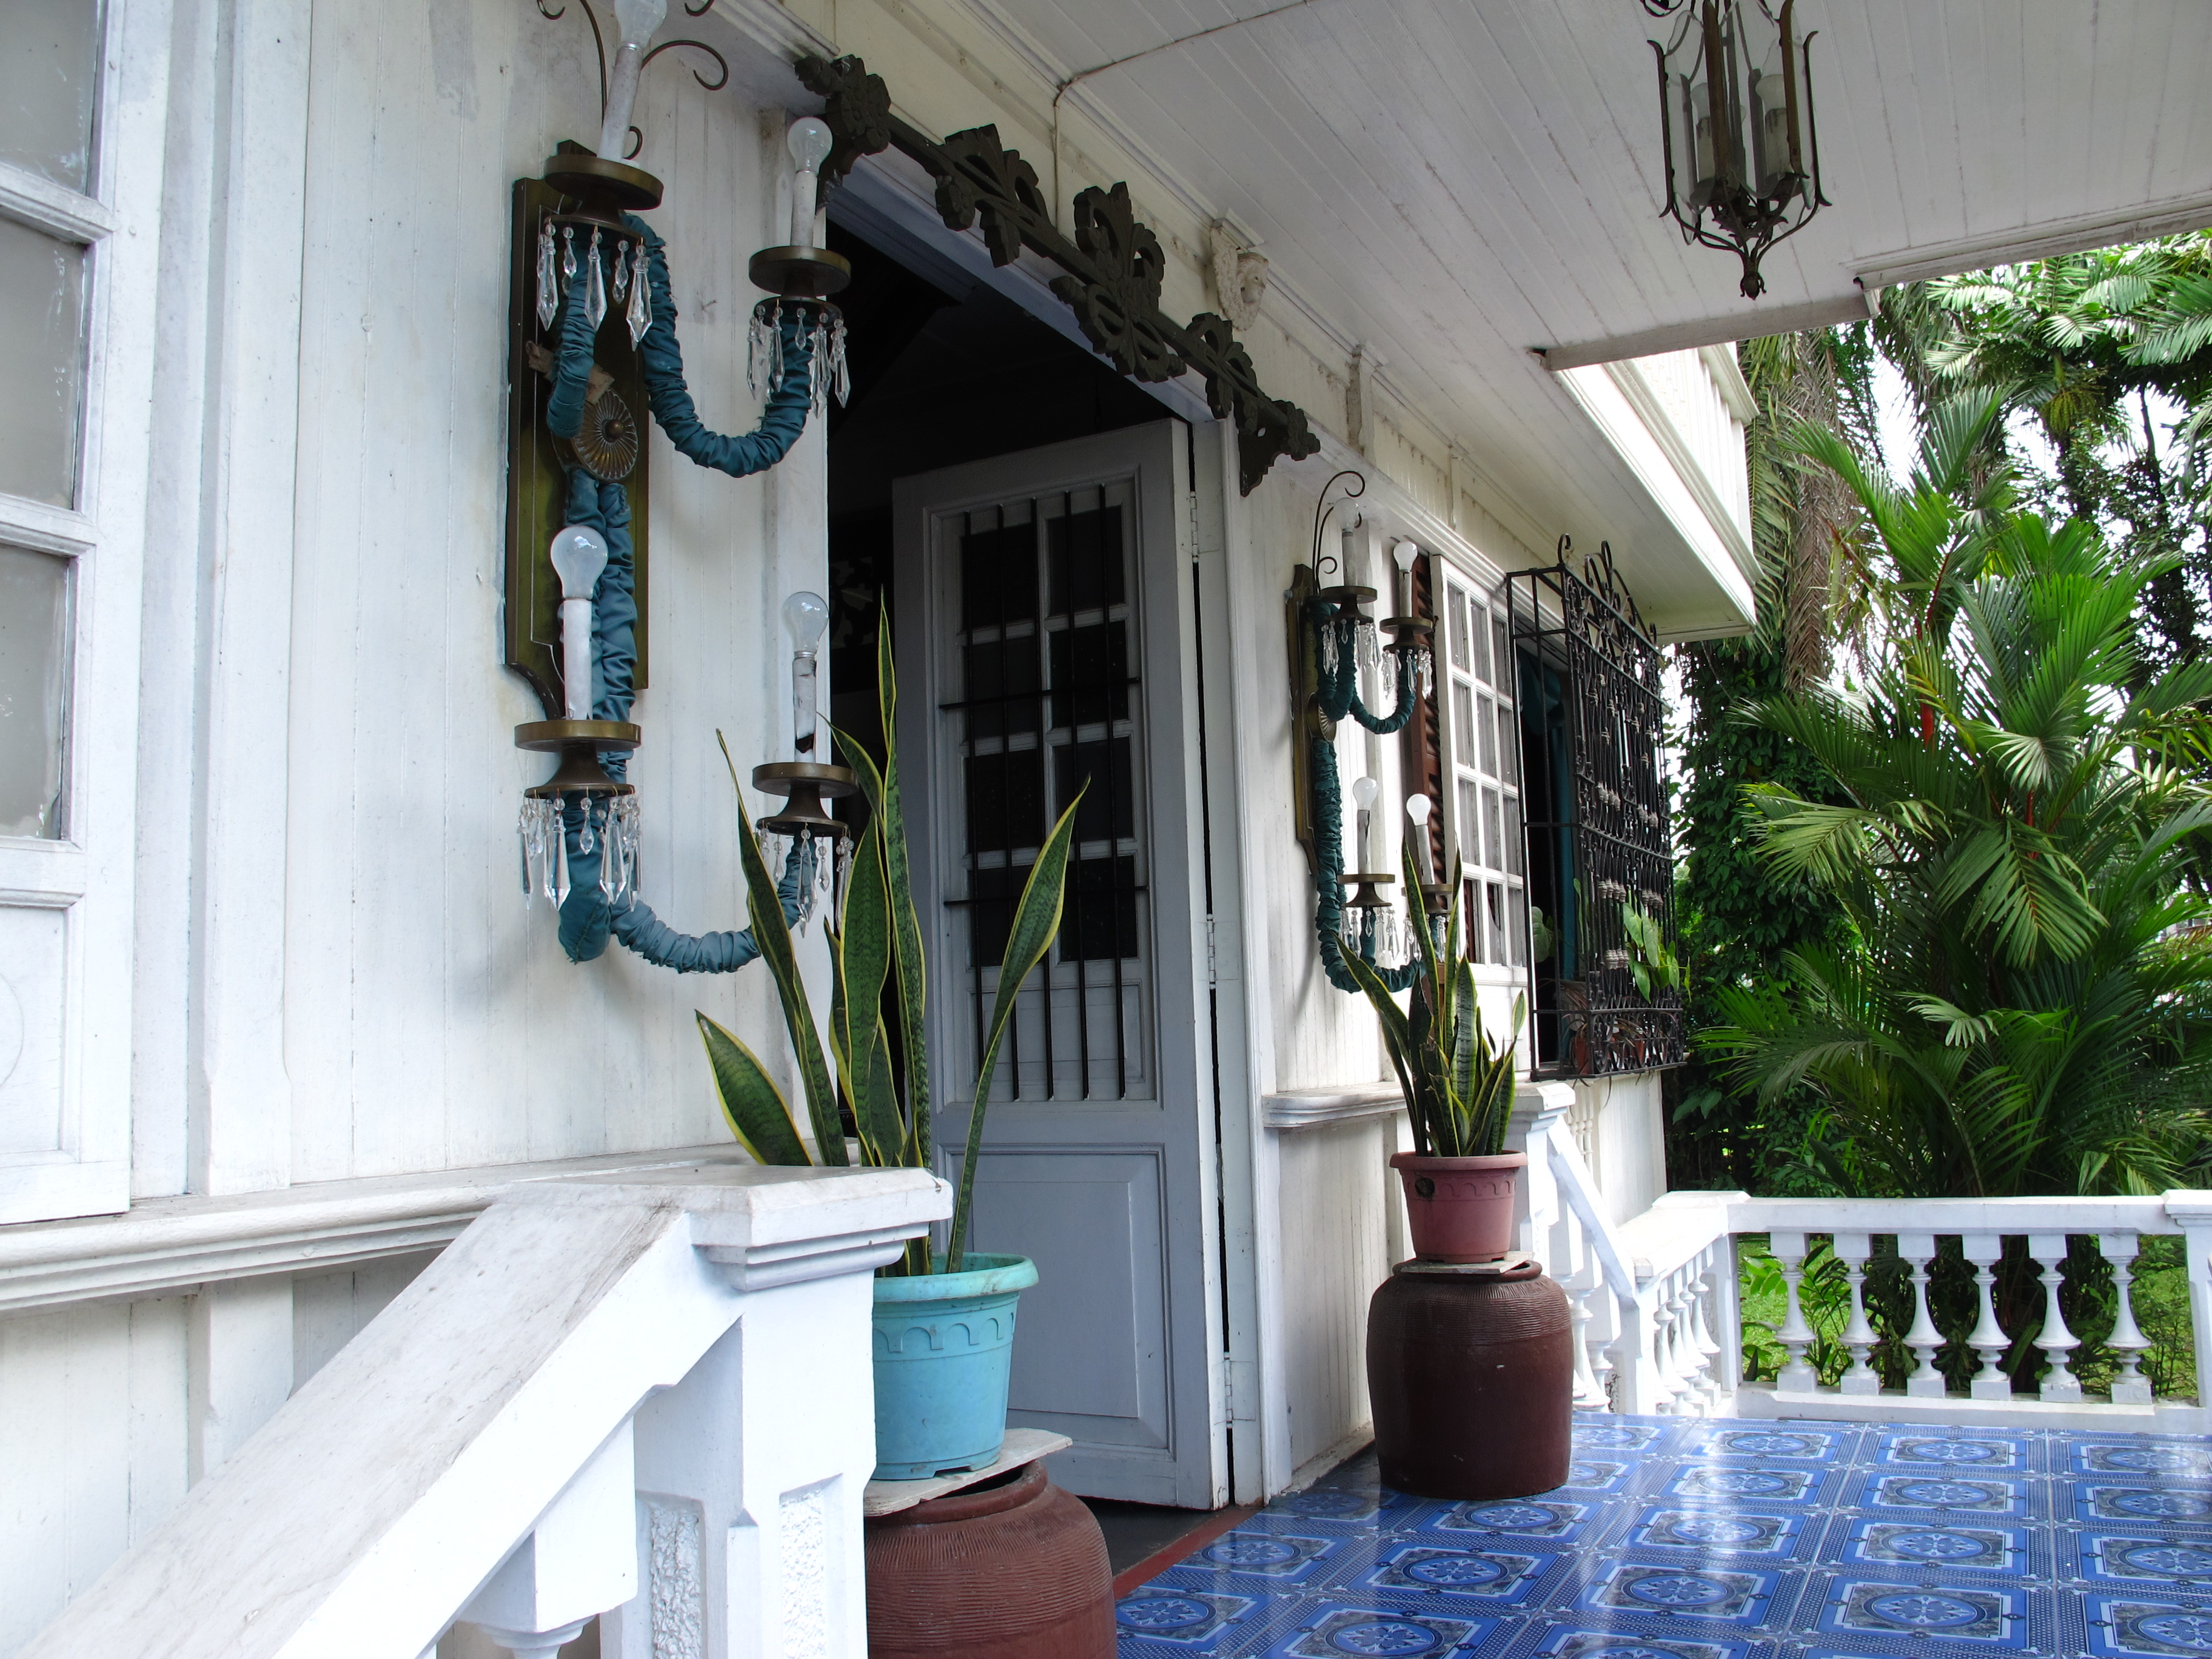 The Heritage Houses of Silay City